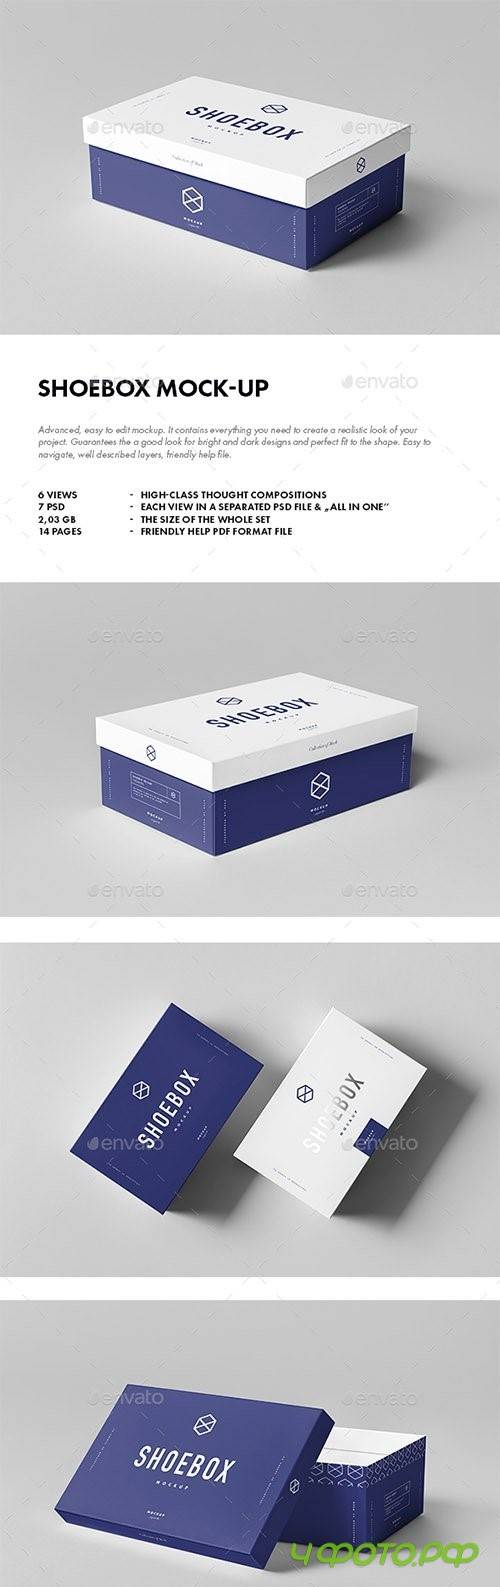 Shoe Box Mock-up - 18958063